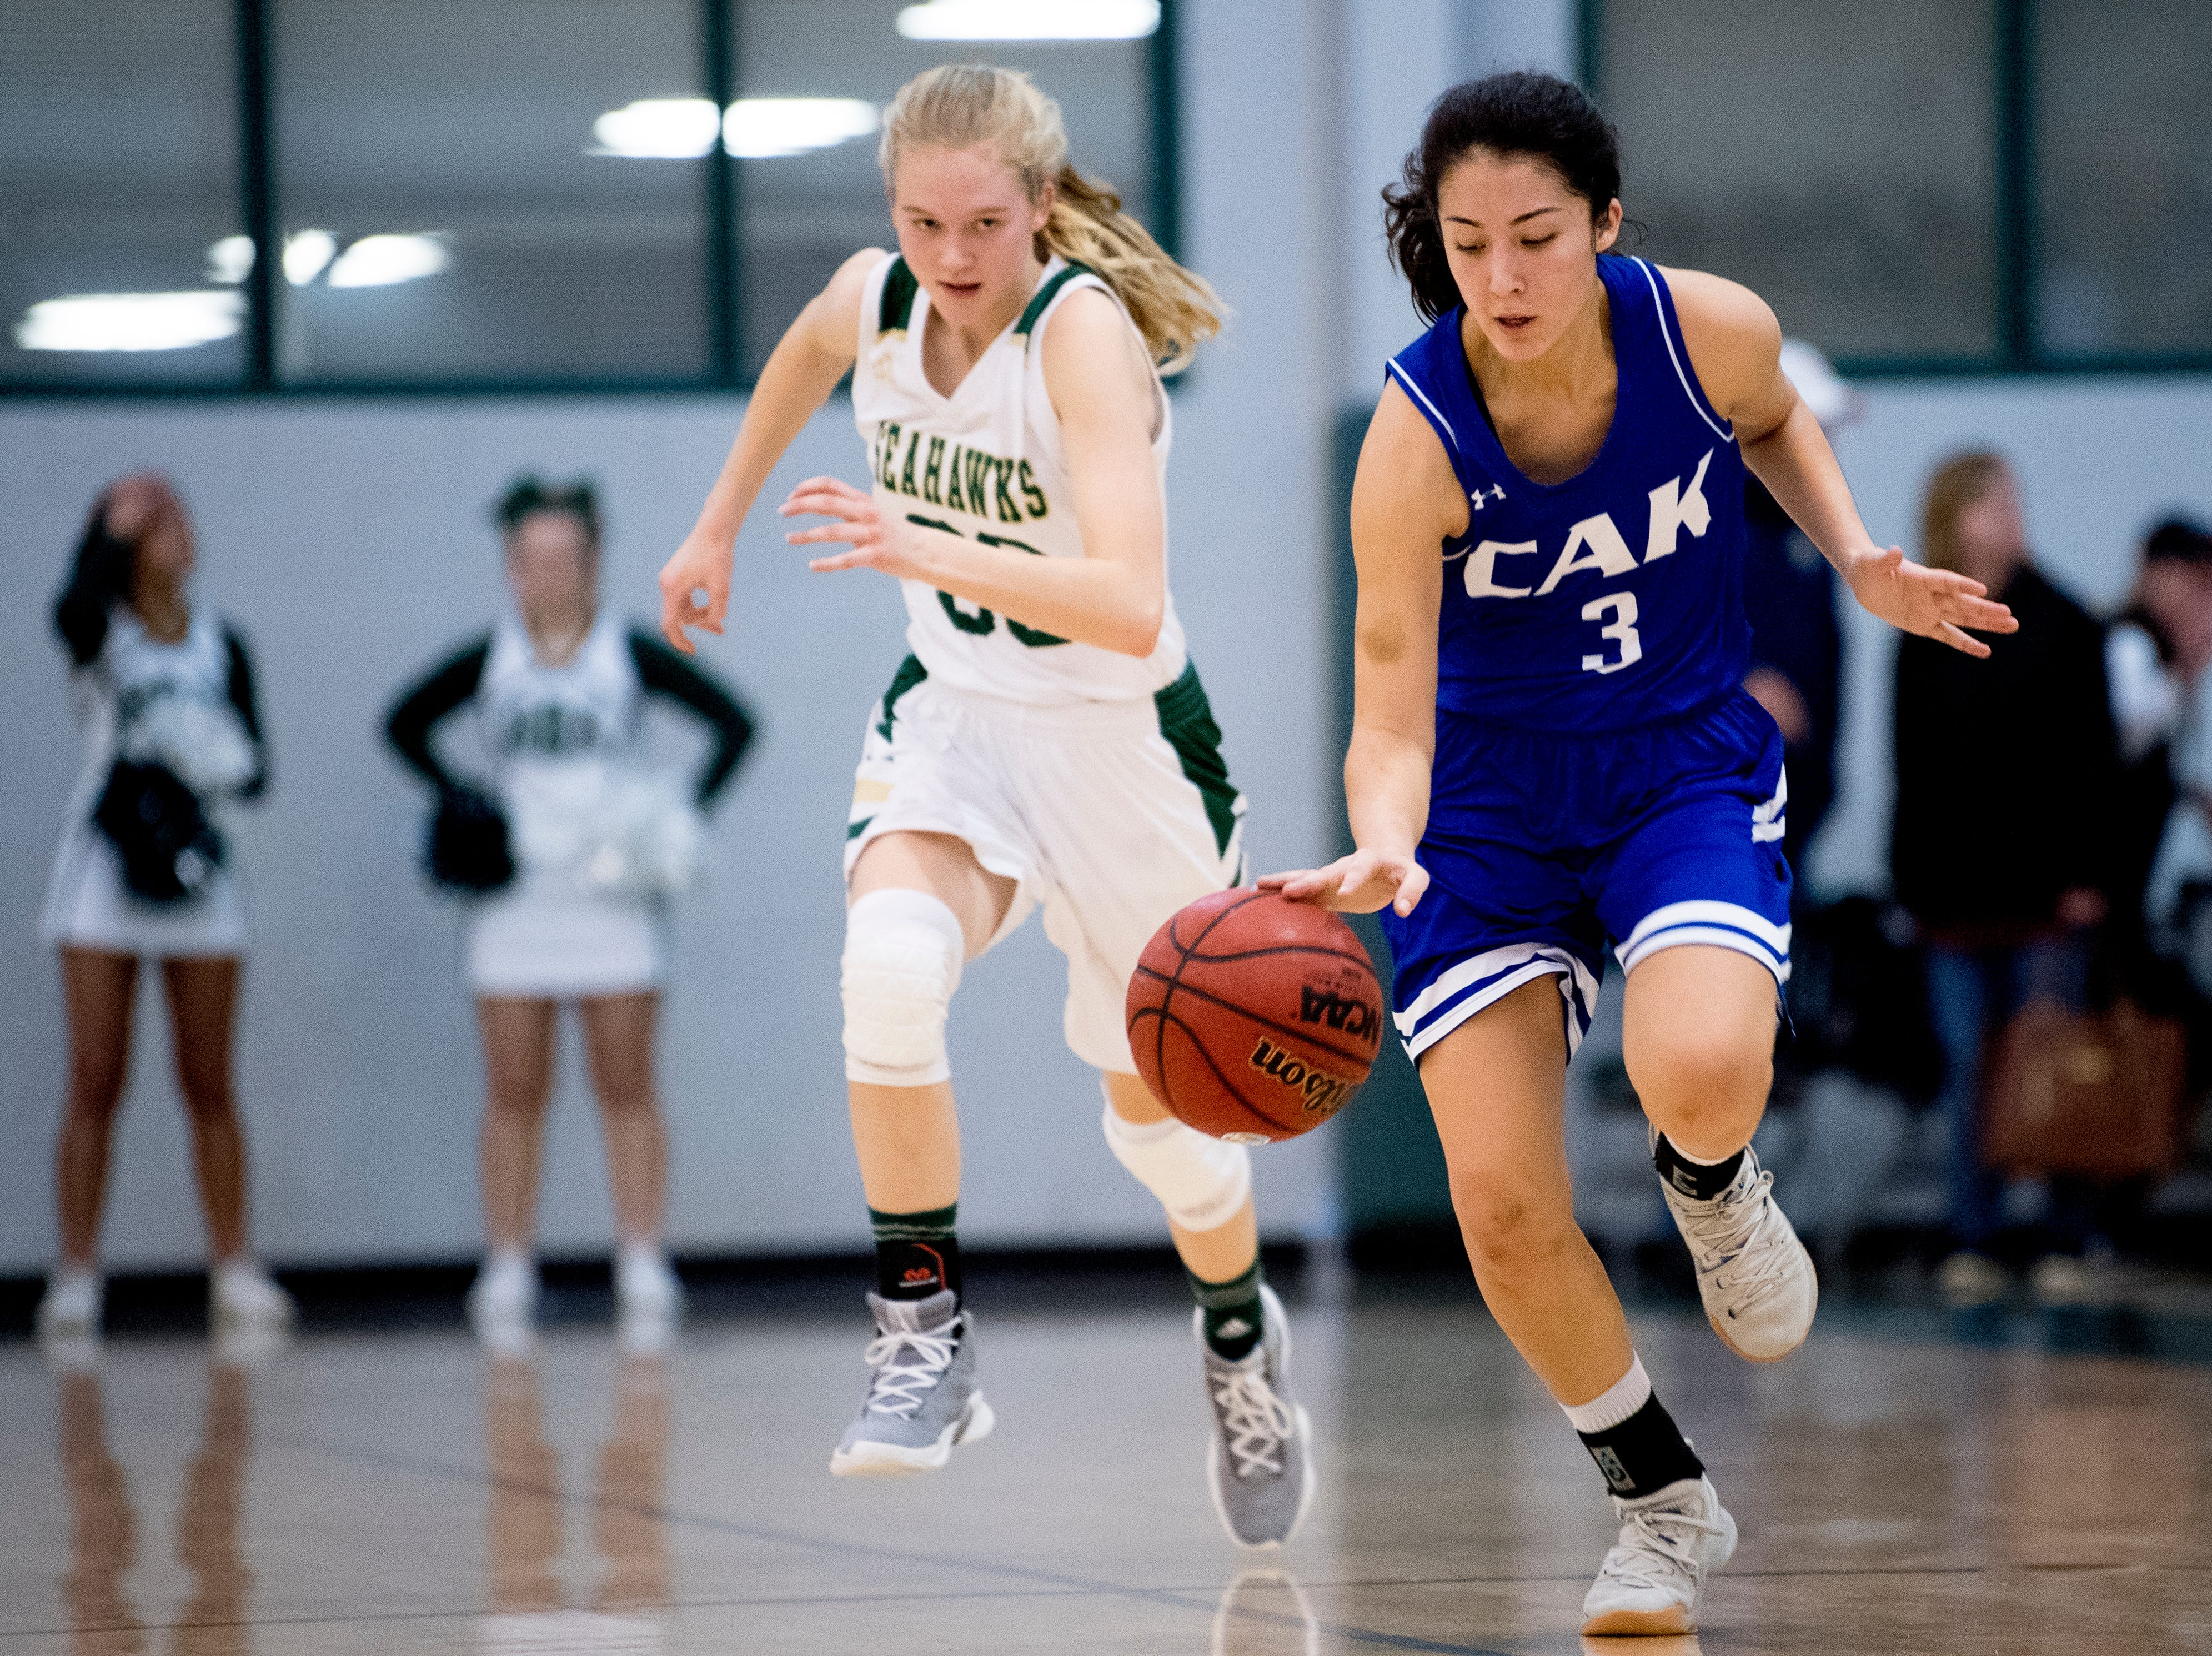 CAK's Ellie Fussell (3) dribbles down the court during a semifinal game between CAK and Silverdale at Webb School of Knoxville in Knoxville, Tennessee on Friday, February 15, 2019.